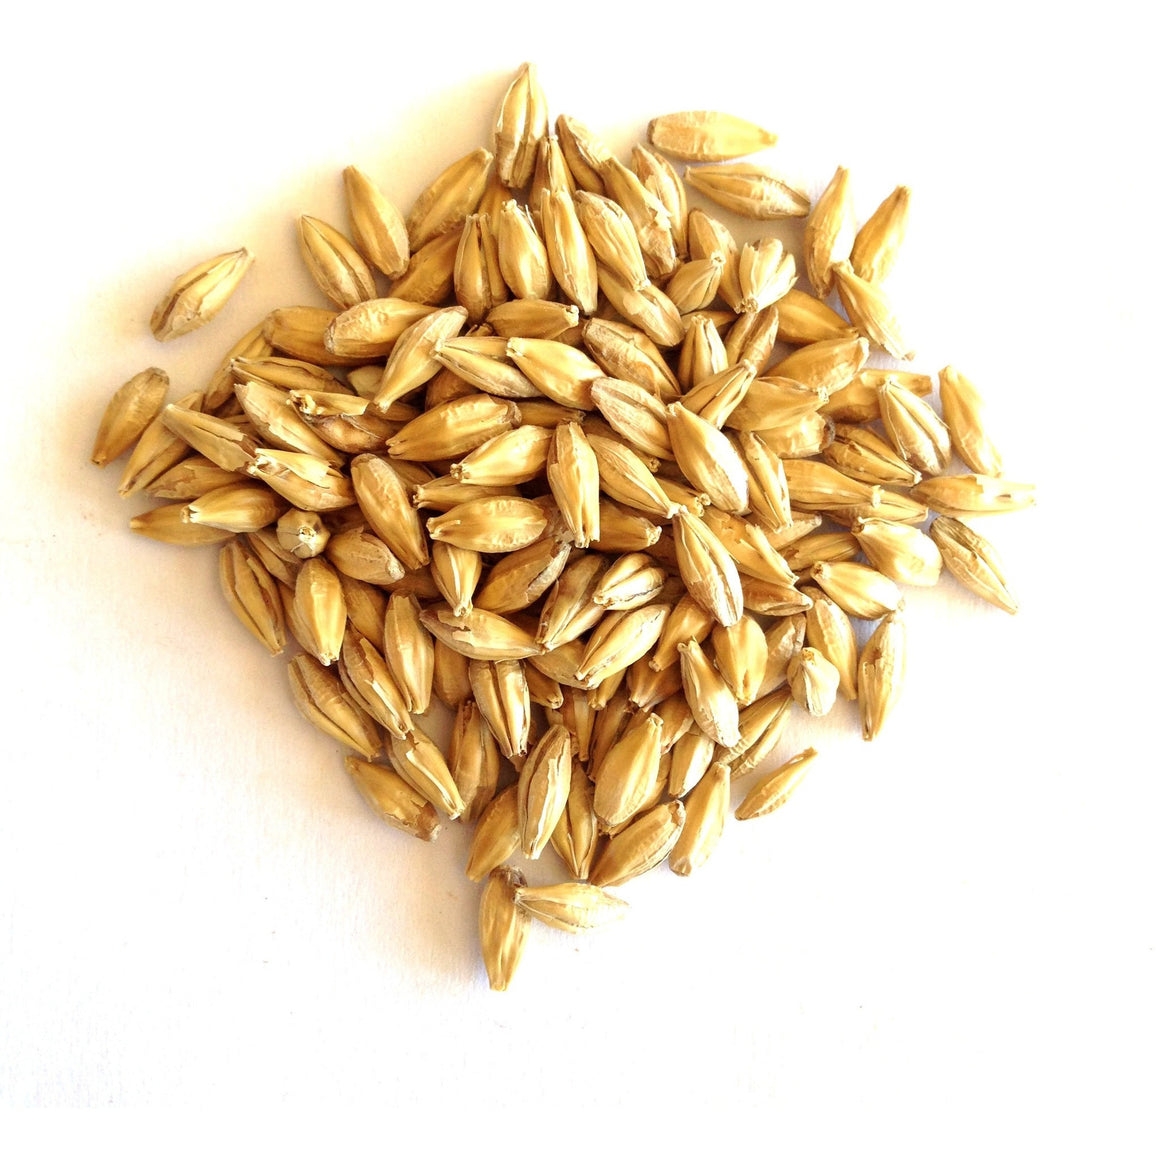 Malted Barley Grain for SST - Certified Organic